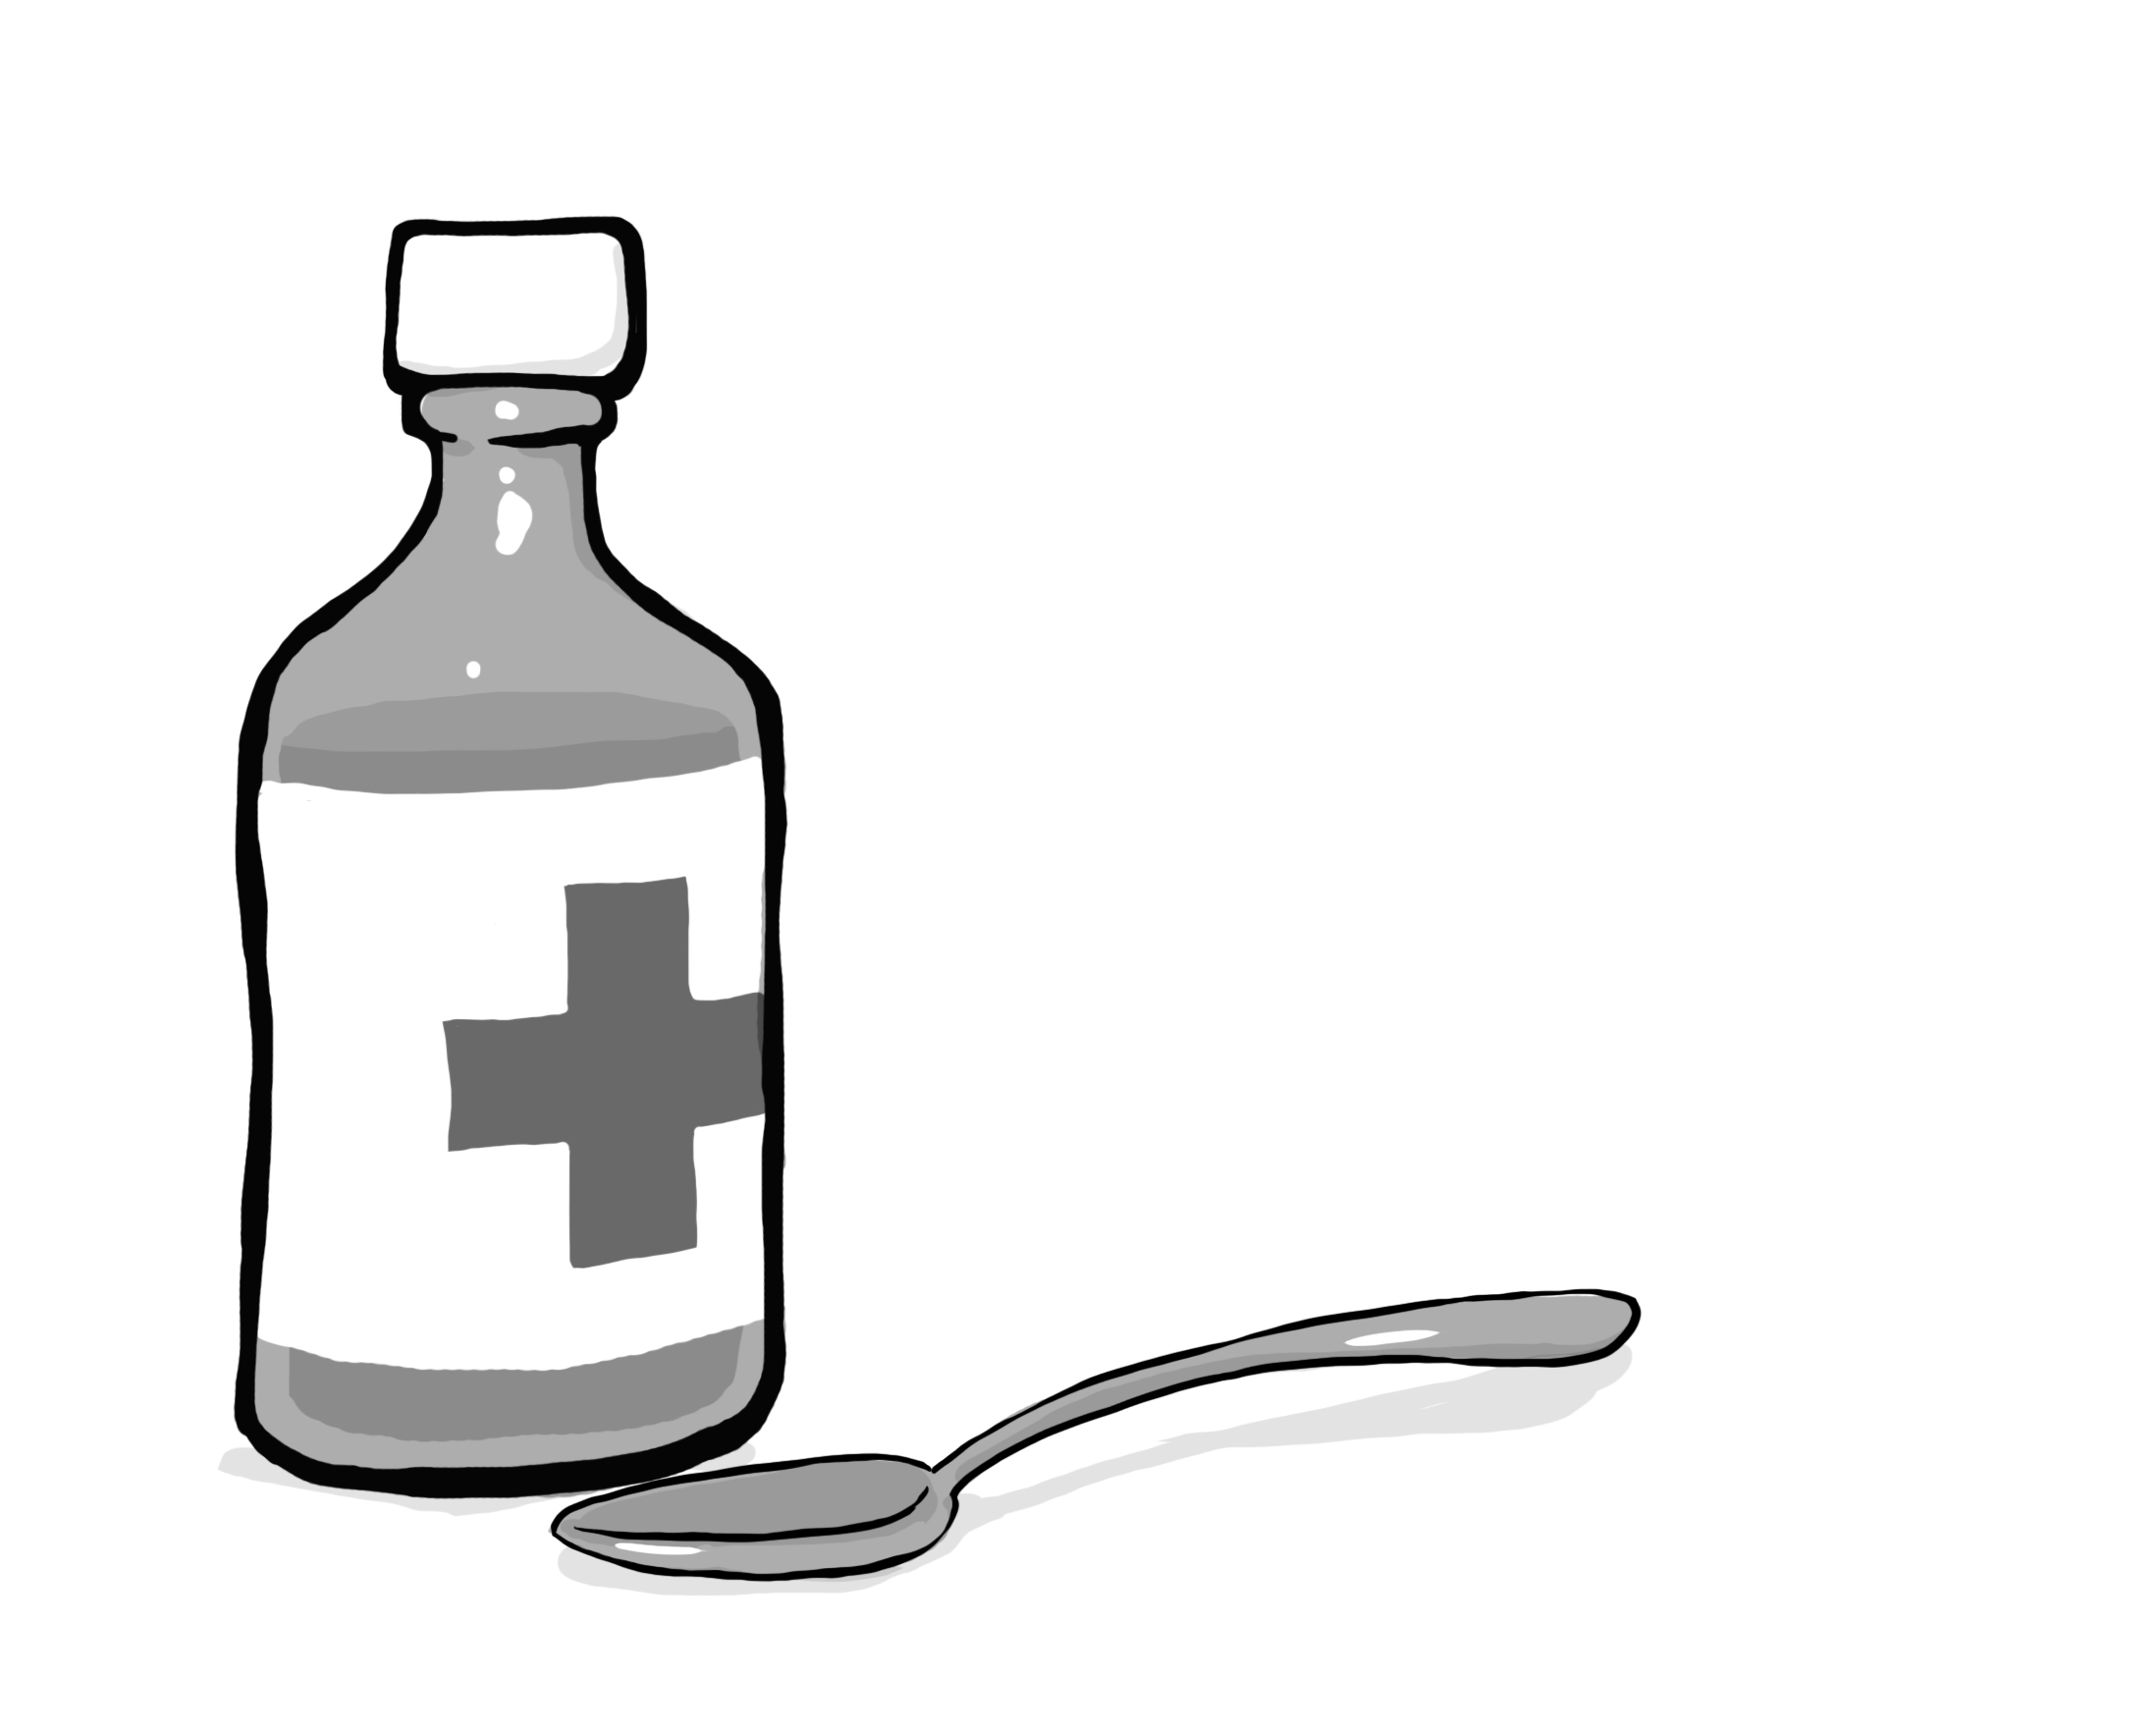 When to Call Doctor: Full bottle of Liquid Medication.